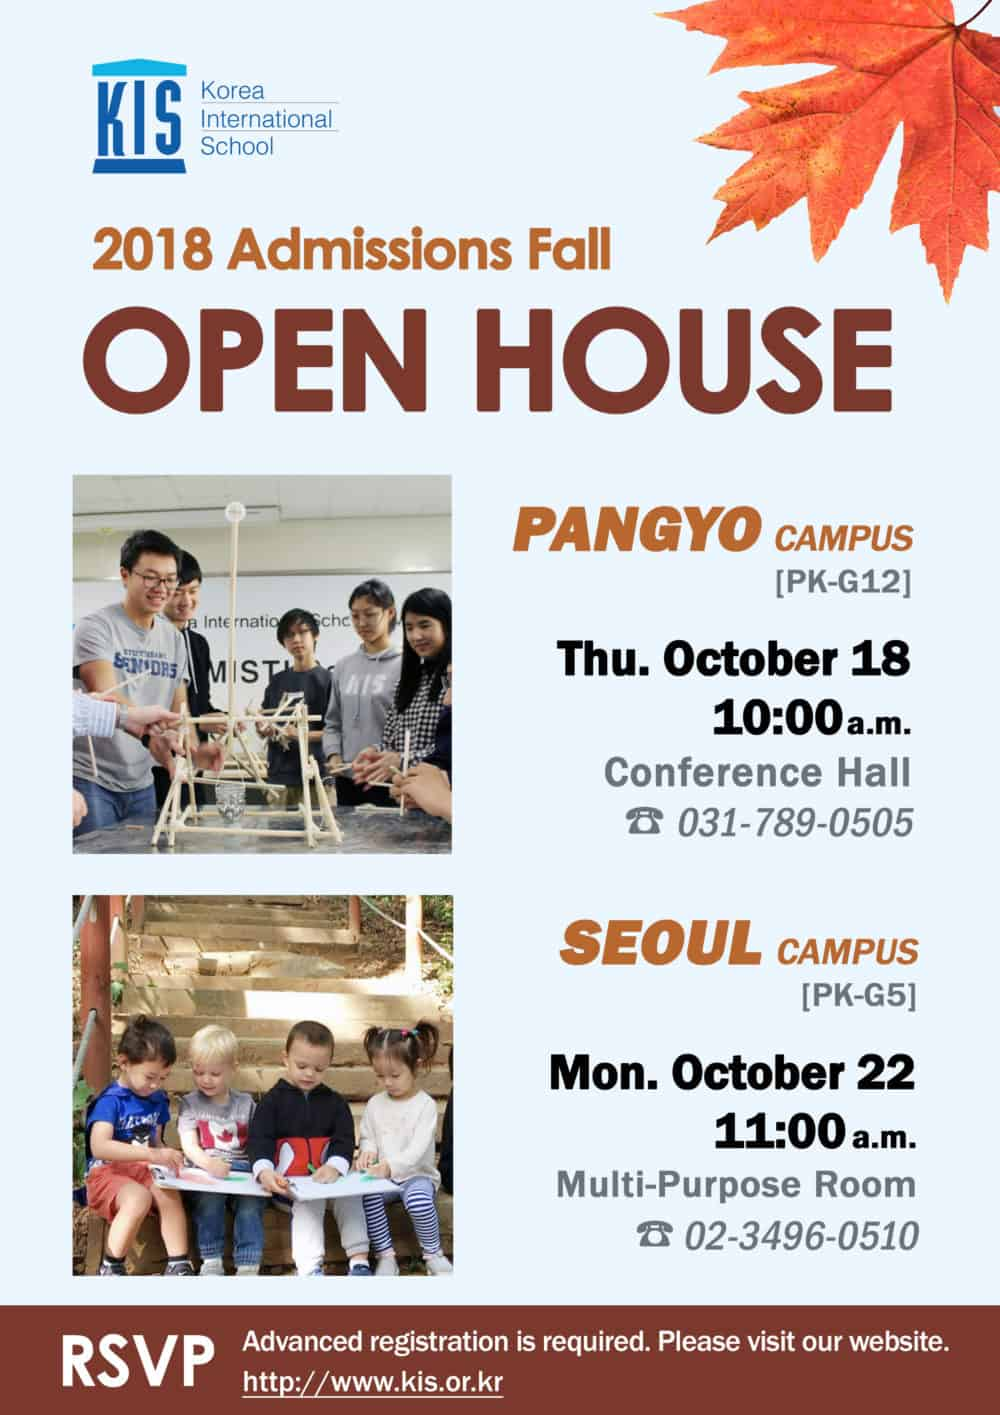 2018 Admissions Fall Open House